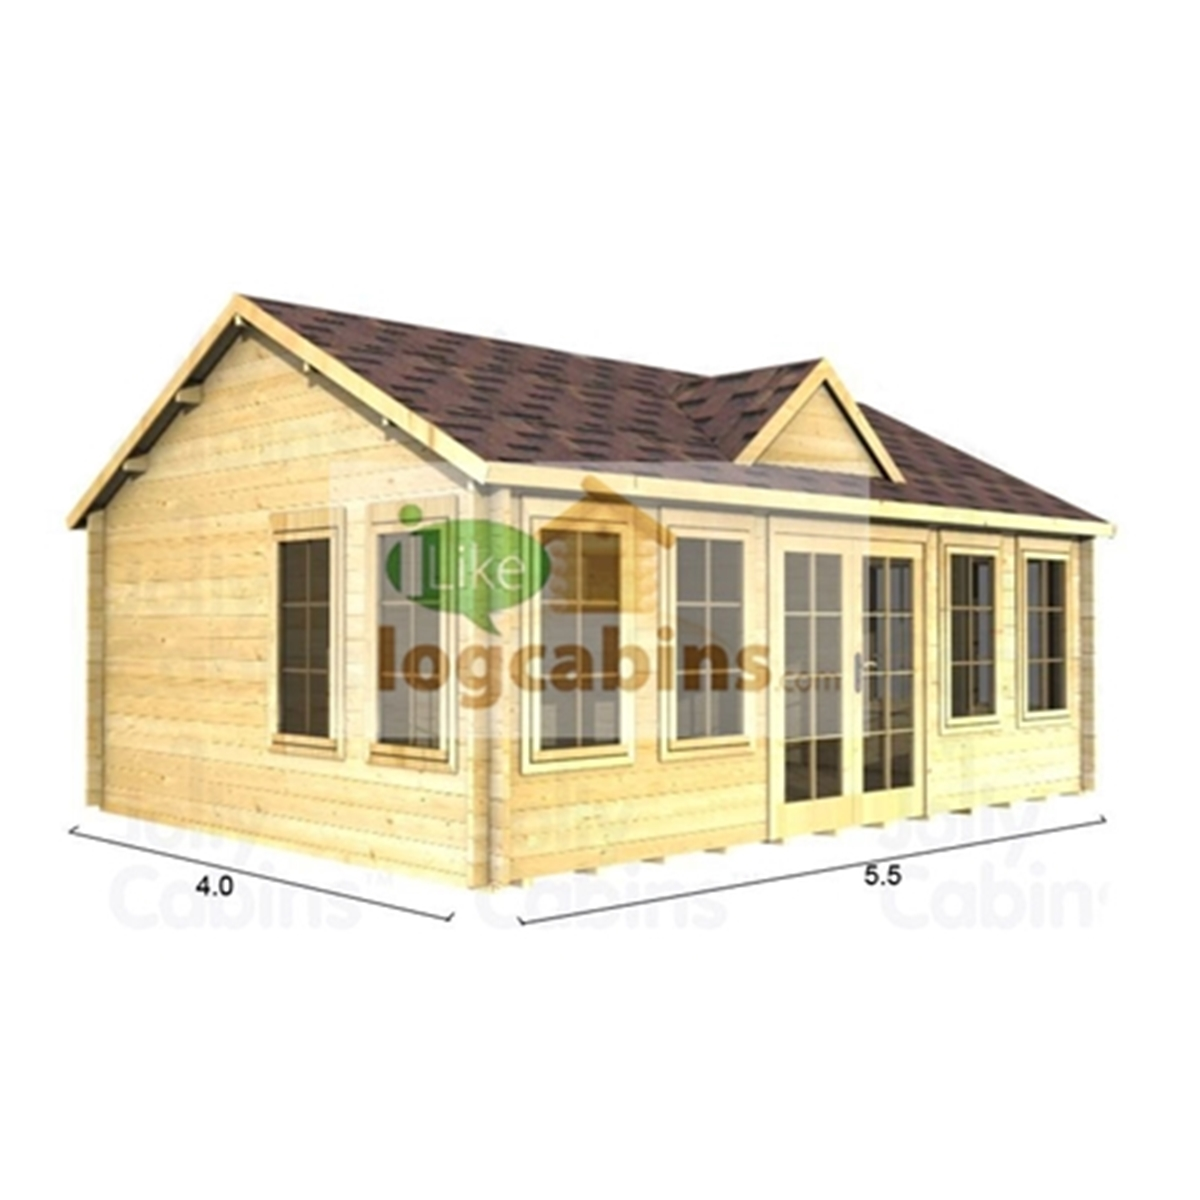 Superb img of Discovery Premier Cabins : 5.5m x 4.0m Deluxe Reverse Apex Log Cabin  with #A98322 color and 1200x1200 pixels